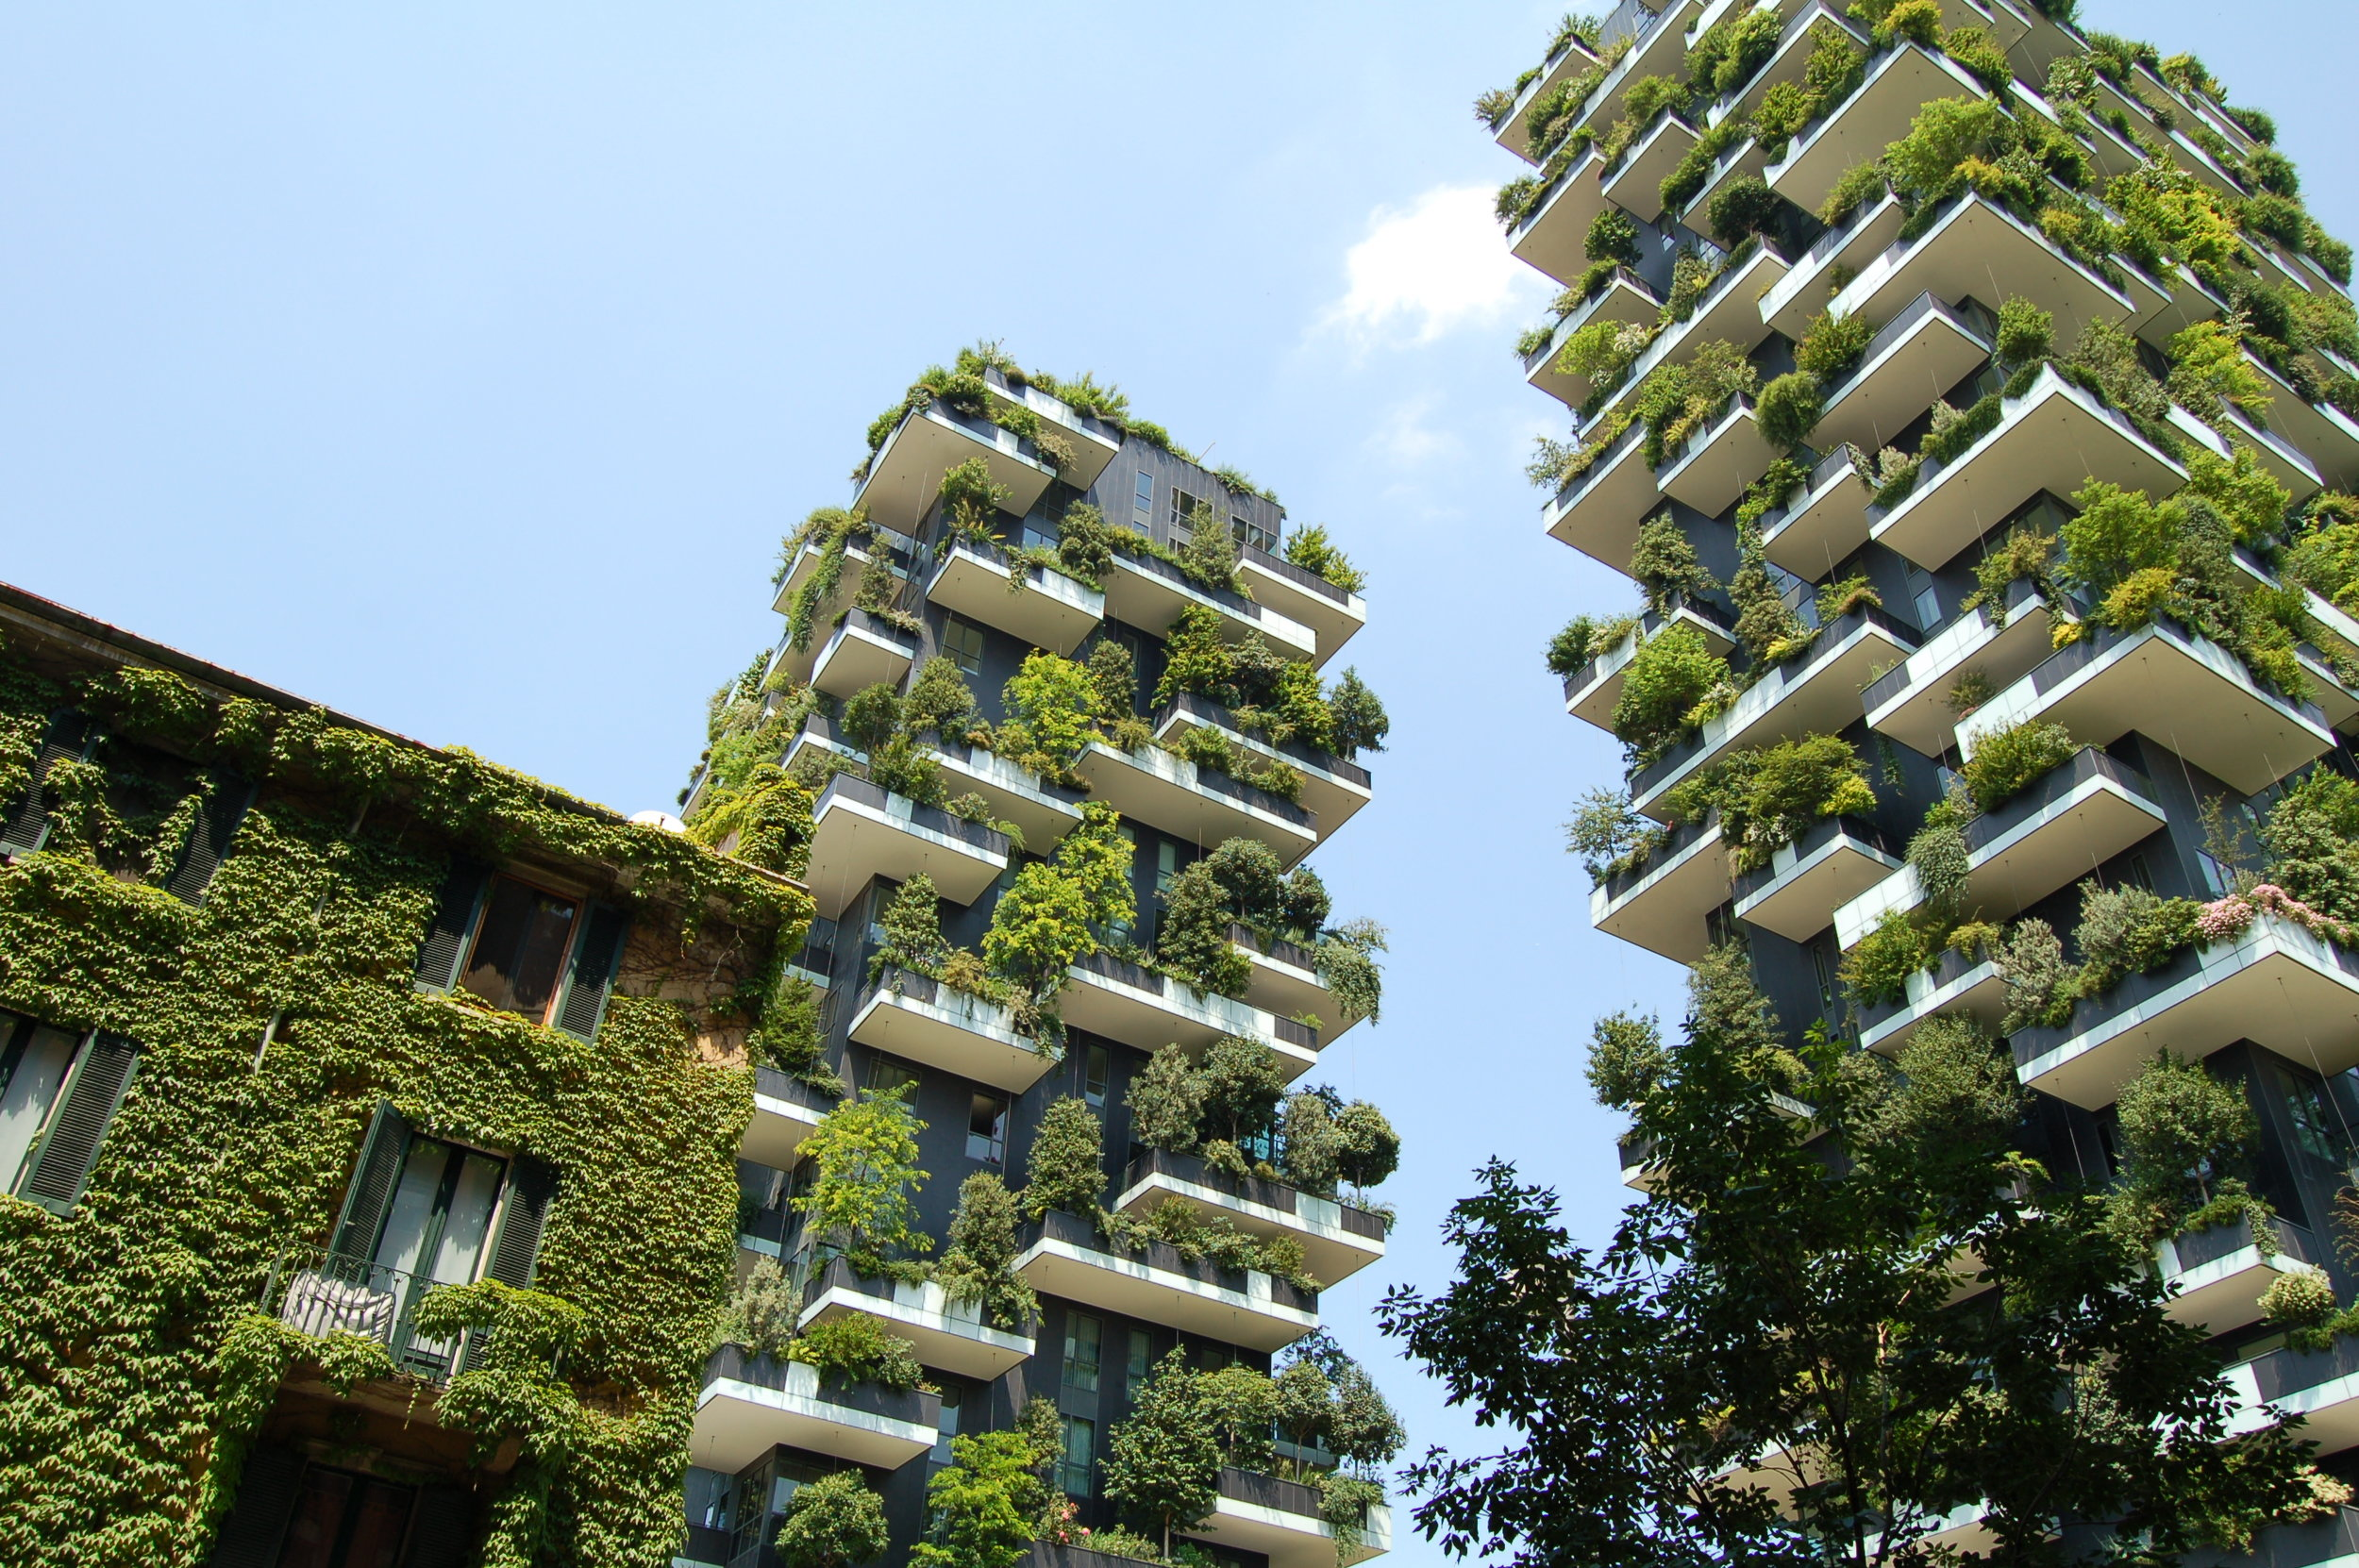 Urban greening and urban sustainability planning -